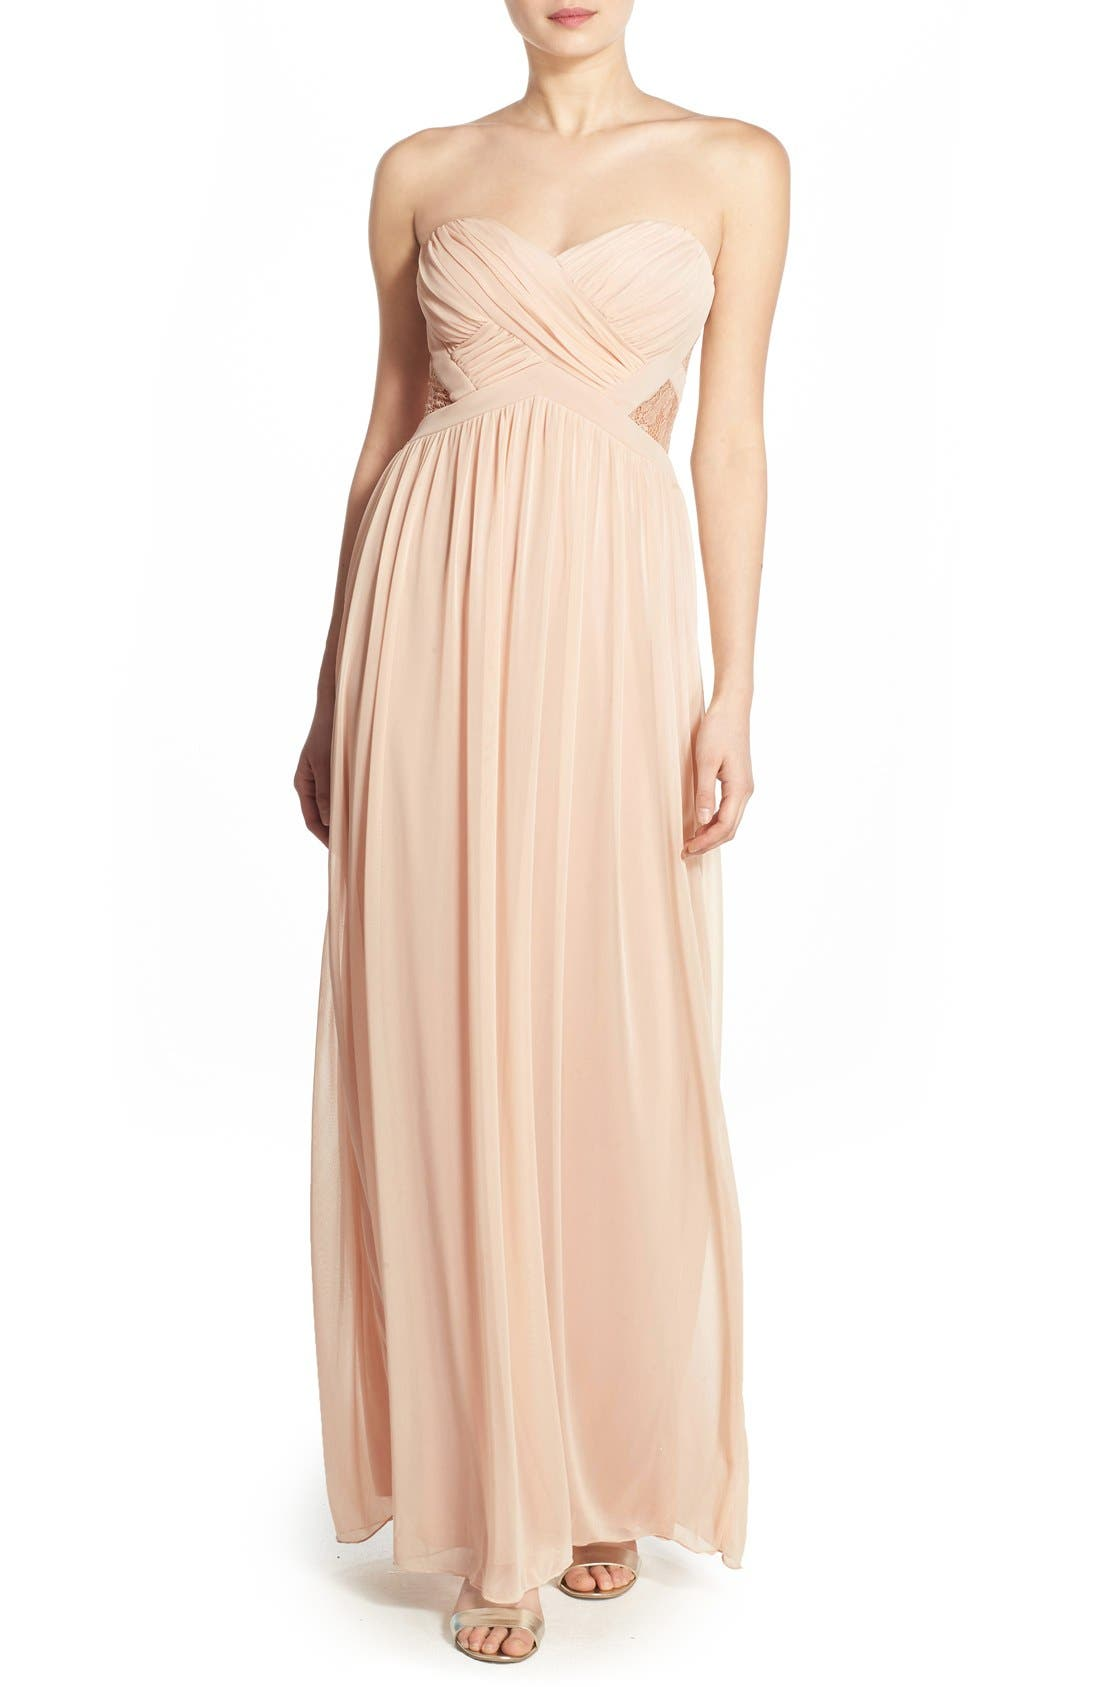 Alternate Image 1 Selected - Way-In 'Diana' Lace Inset Strapless Gown